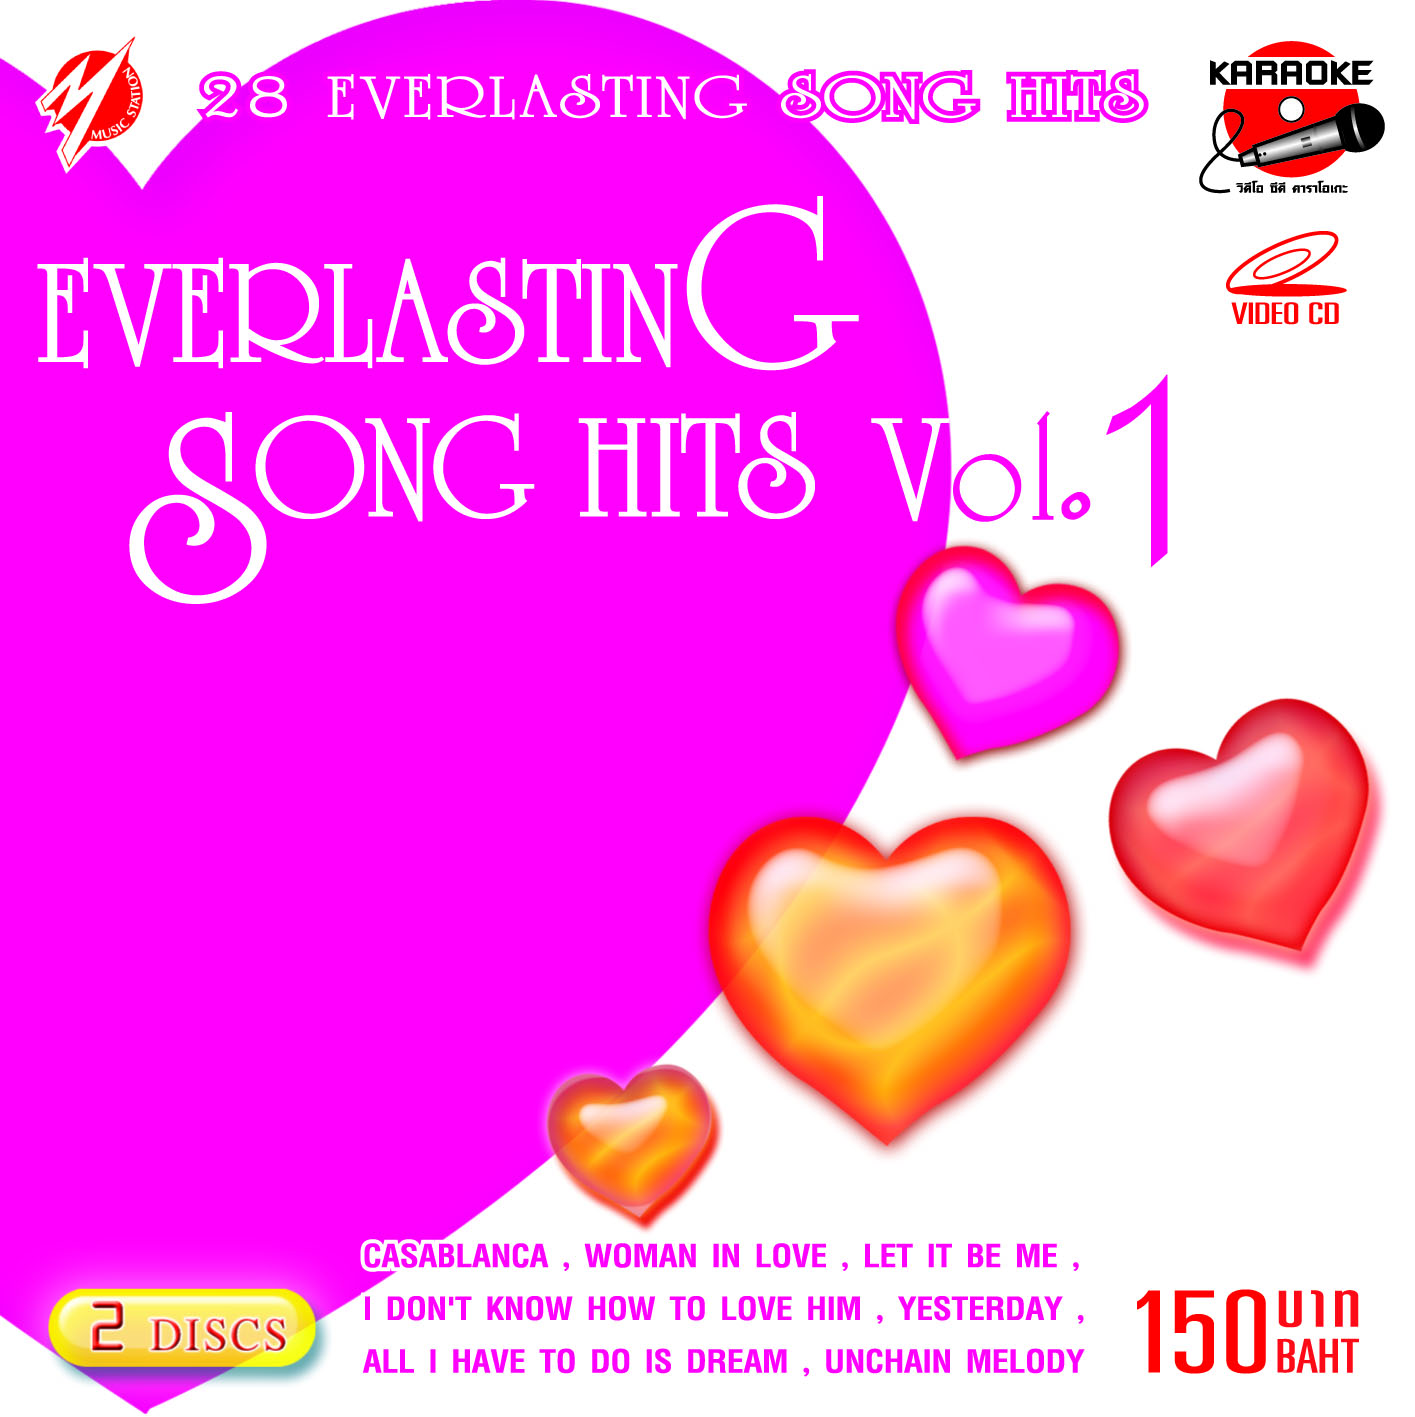 THE EVERLASTING SONG HITS 1